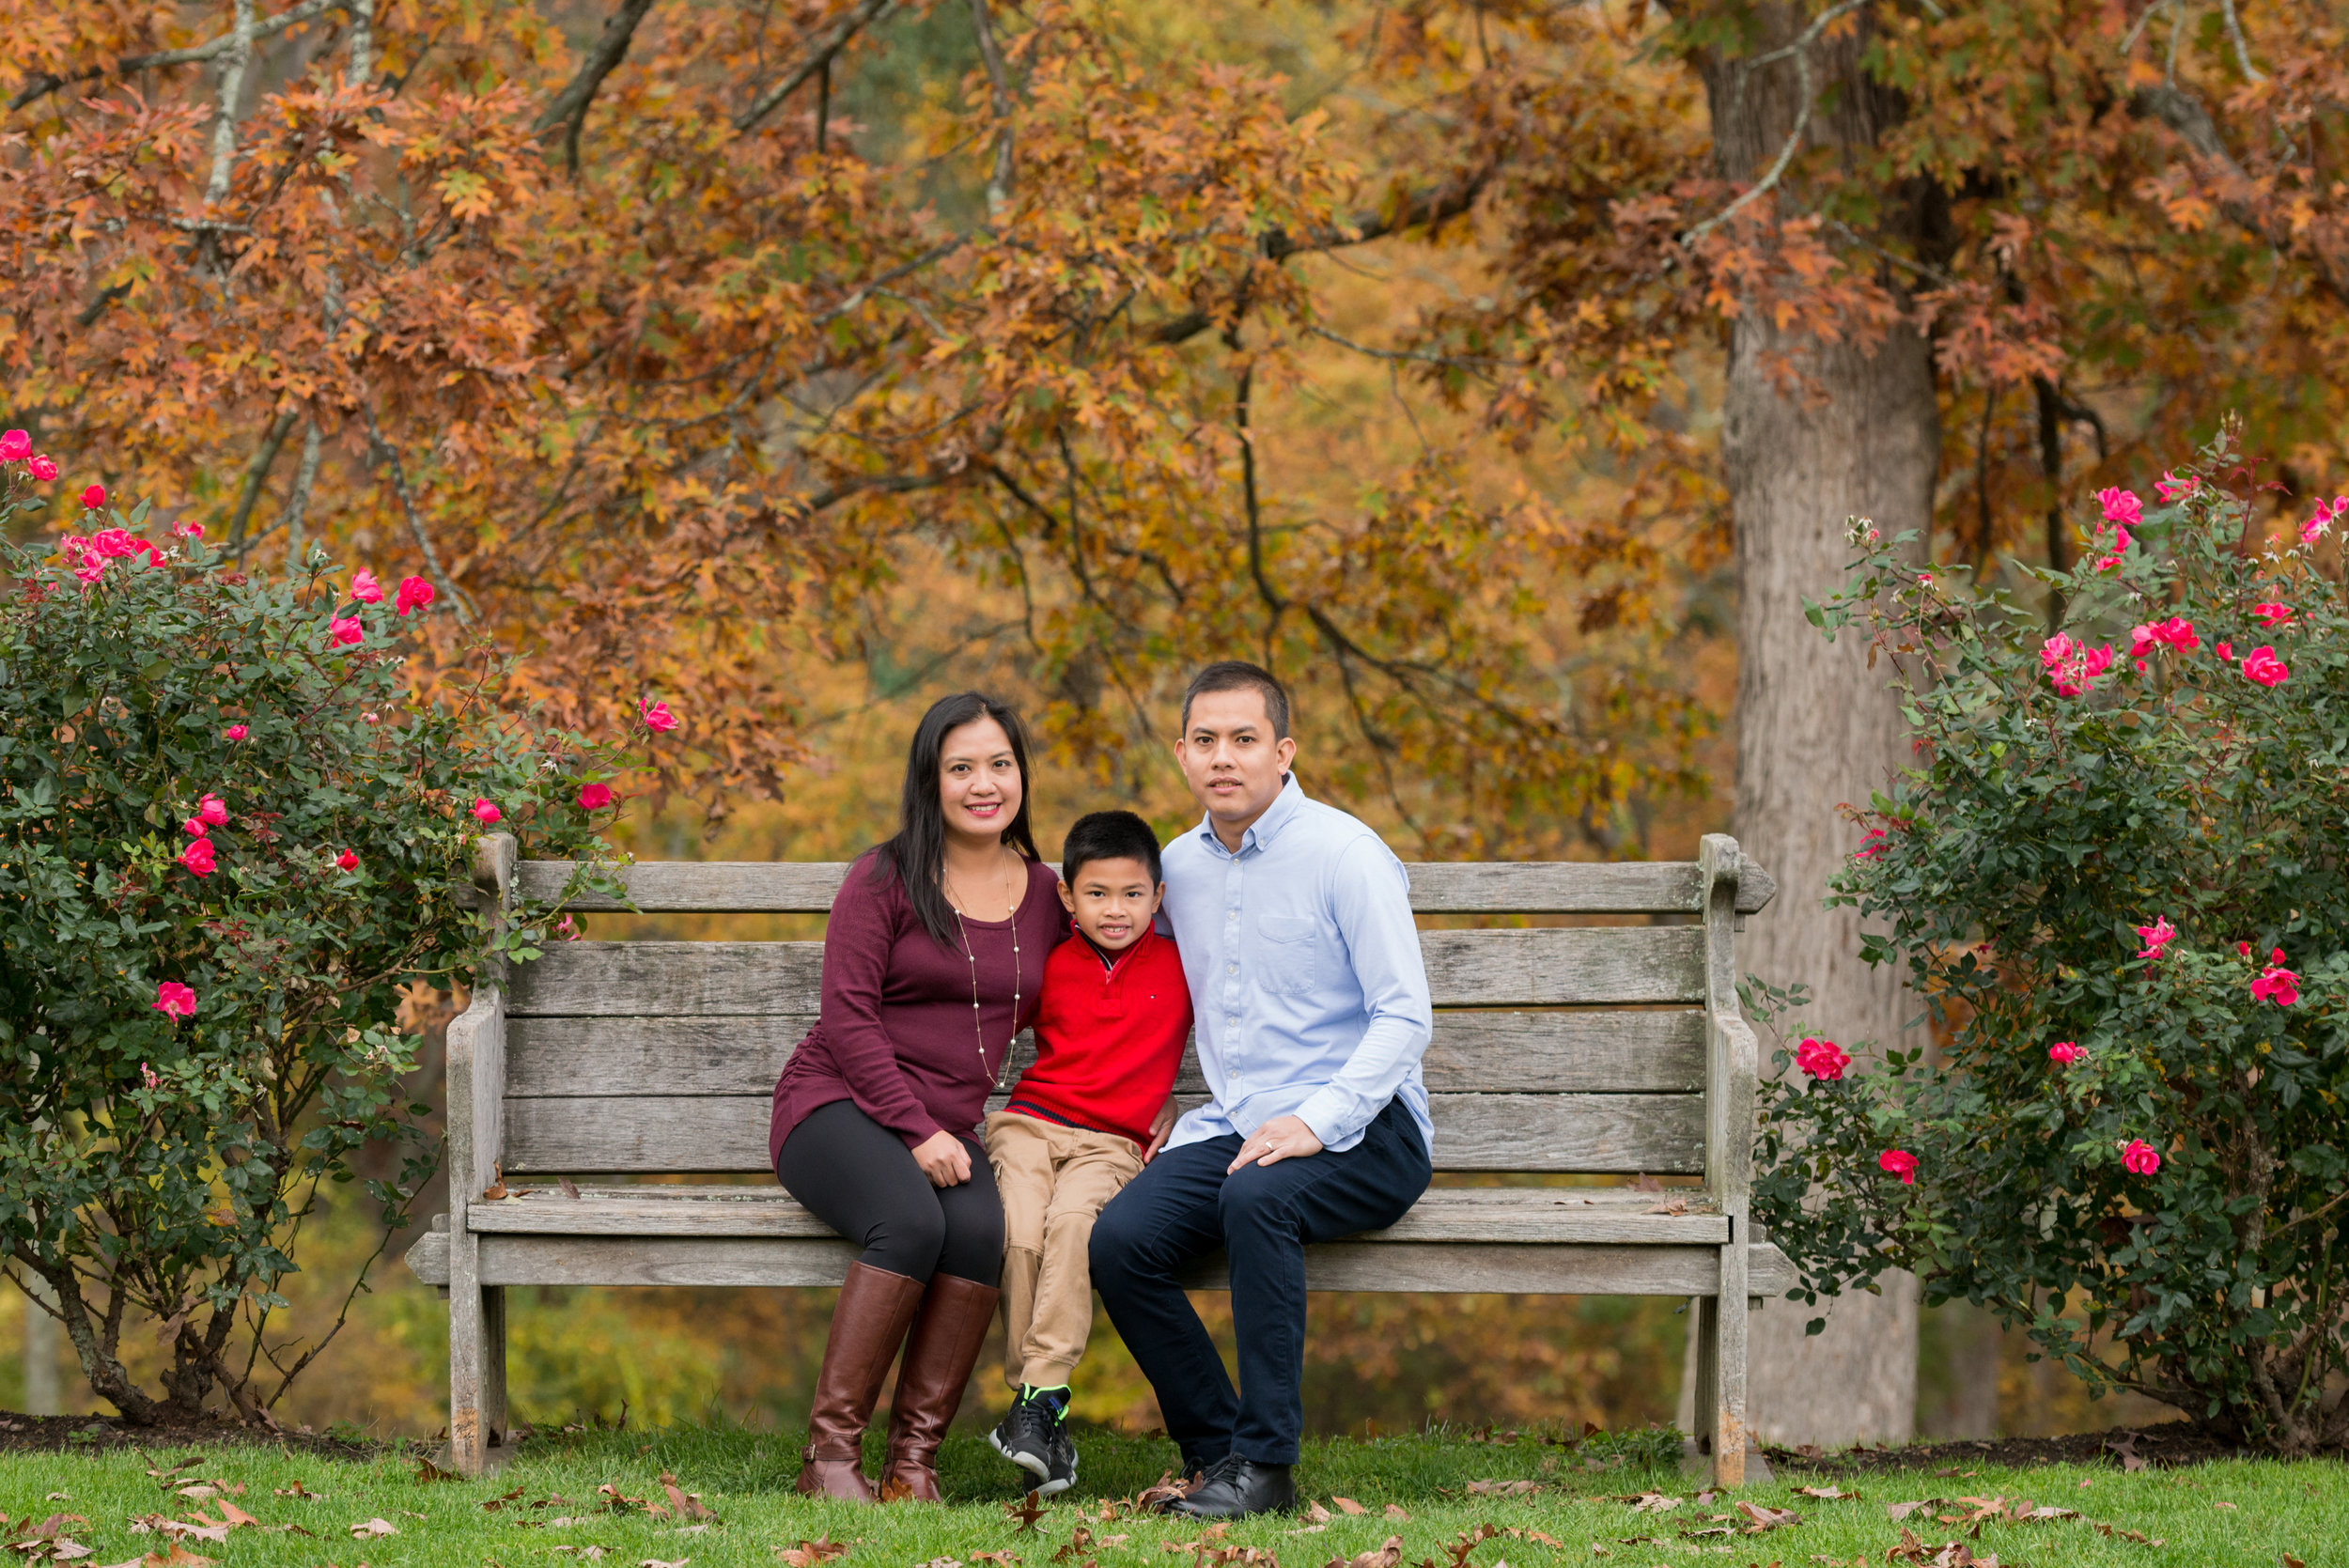 Abegail-Family-Session-Fall2017-26.jpg